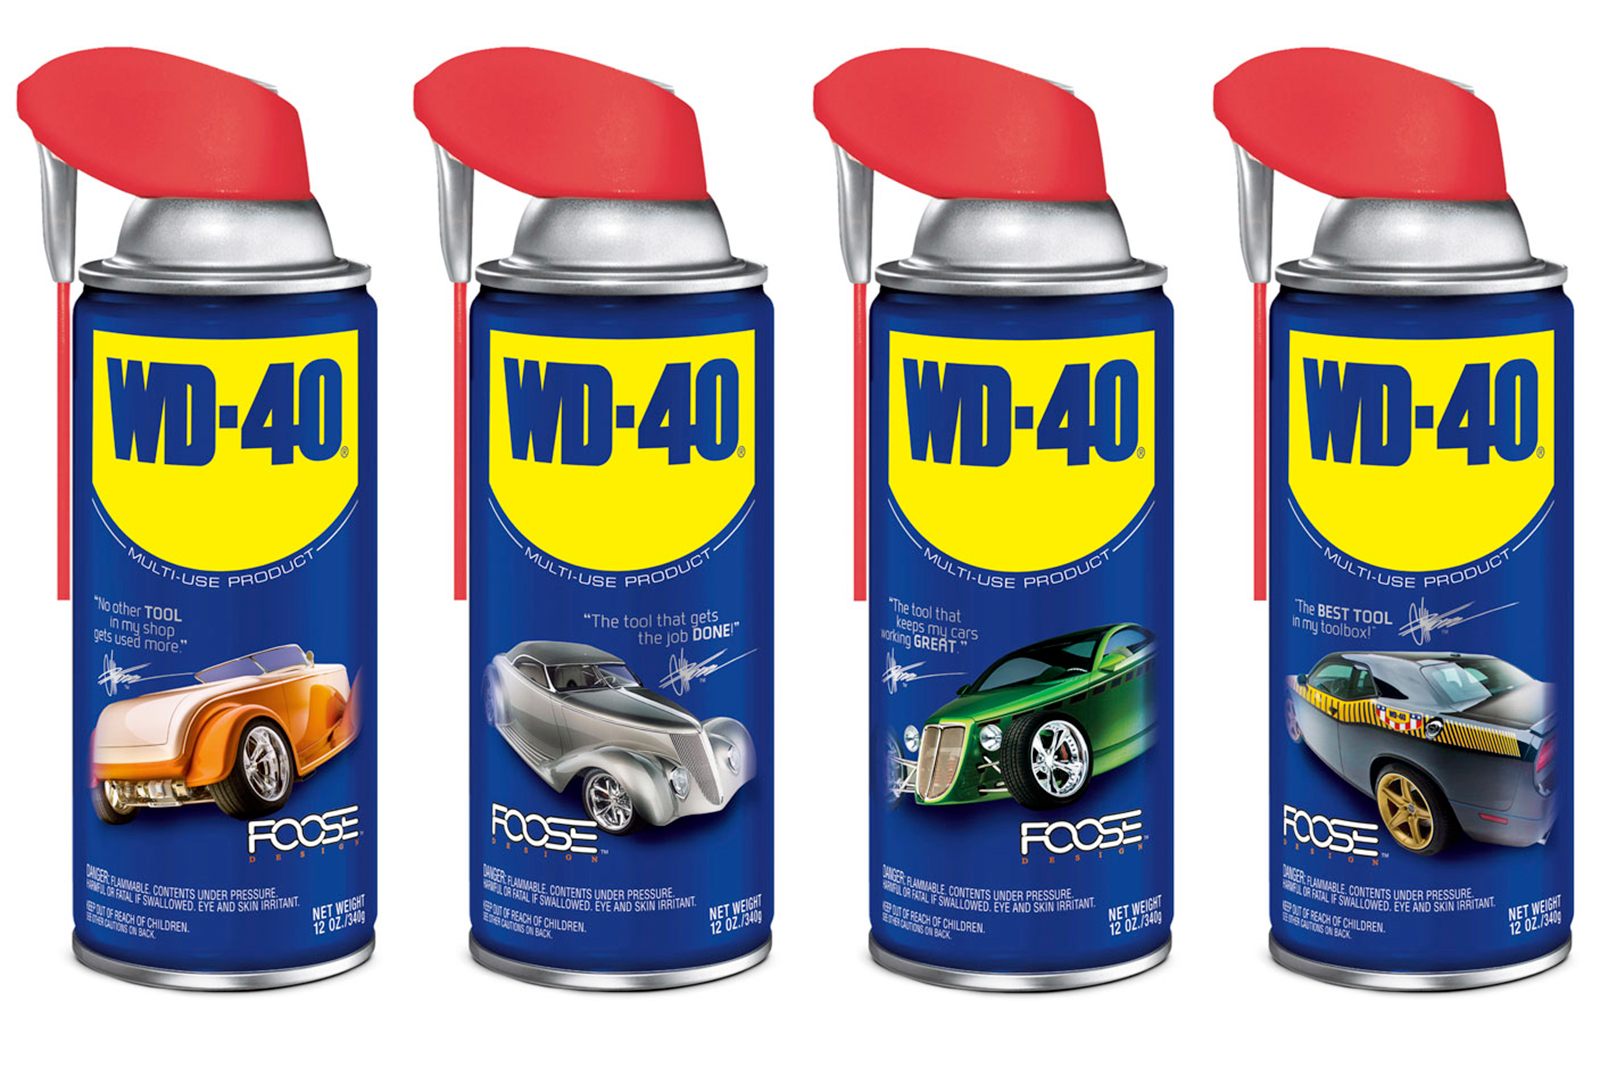 Wd40 96 pieces jigsaw puzzle for Wd 40 fish oil